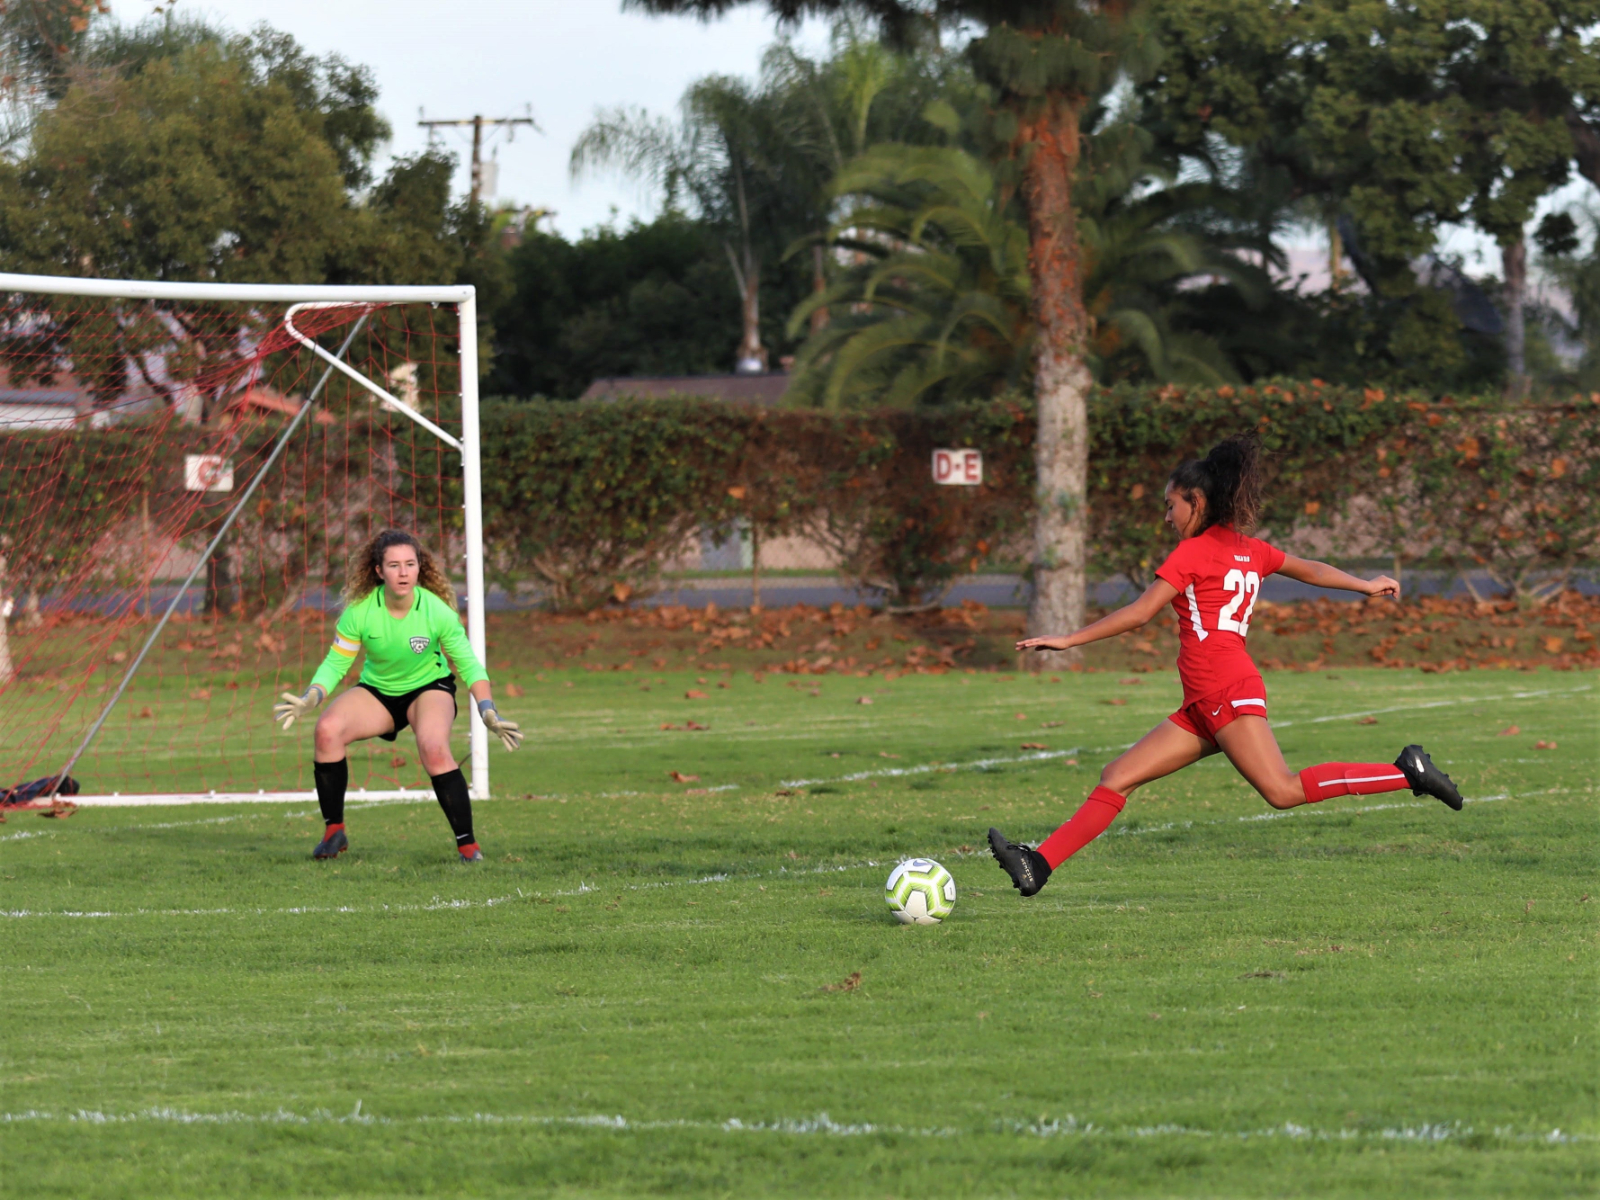 Whittier Christian Girls Soccer Loses Tough Match to Pacifica Christian